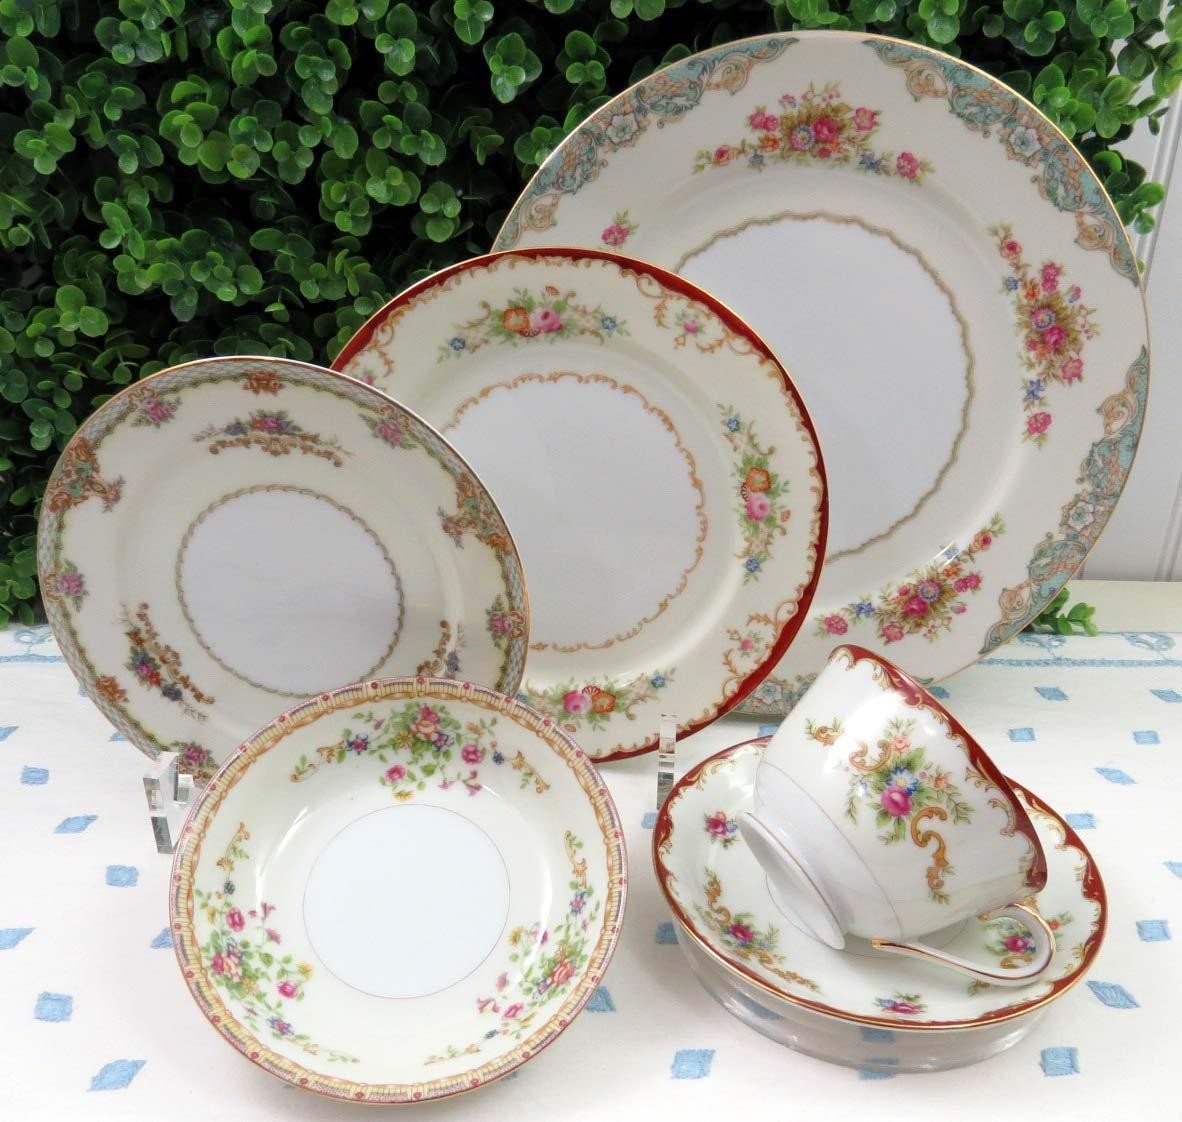 Vintage Mismatched Fine China Dinnerware - Service for 4 (24 Piece Set) - Image & Vintage Mismatched Fine China Dinnerware - Service for 4 (24 Piece ...